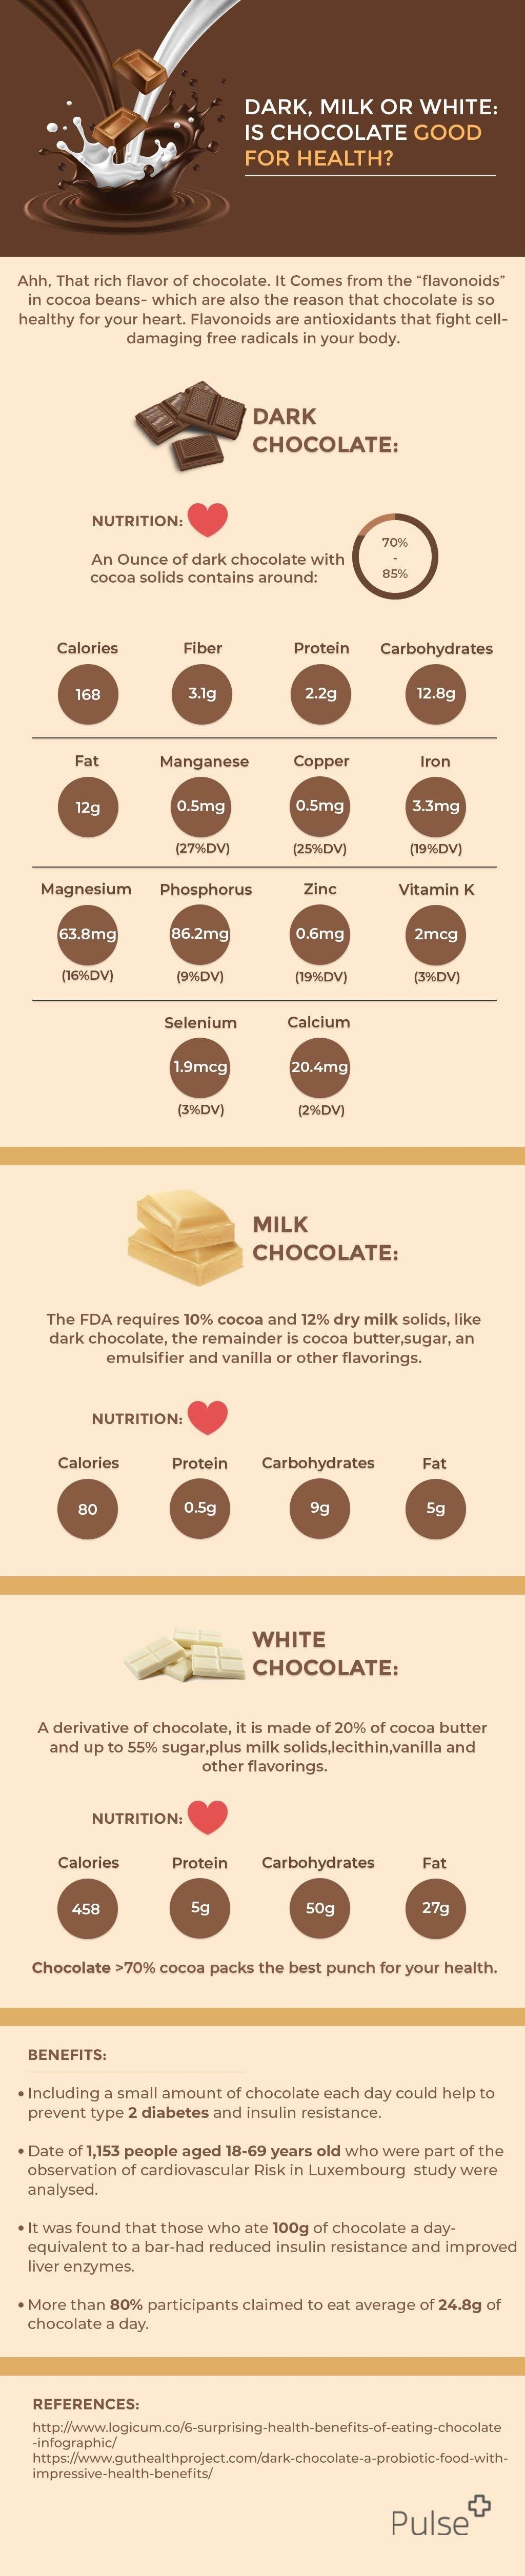 Dark, Milk or White: Is it healthy chocolate? #infographic